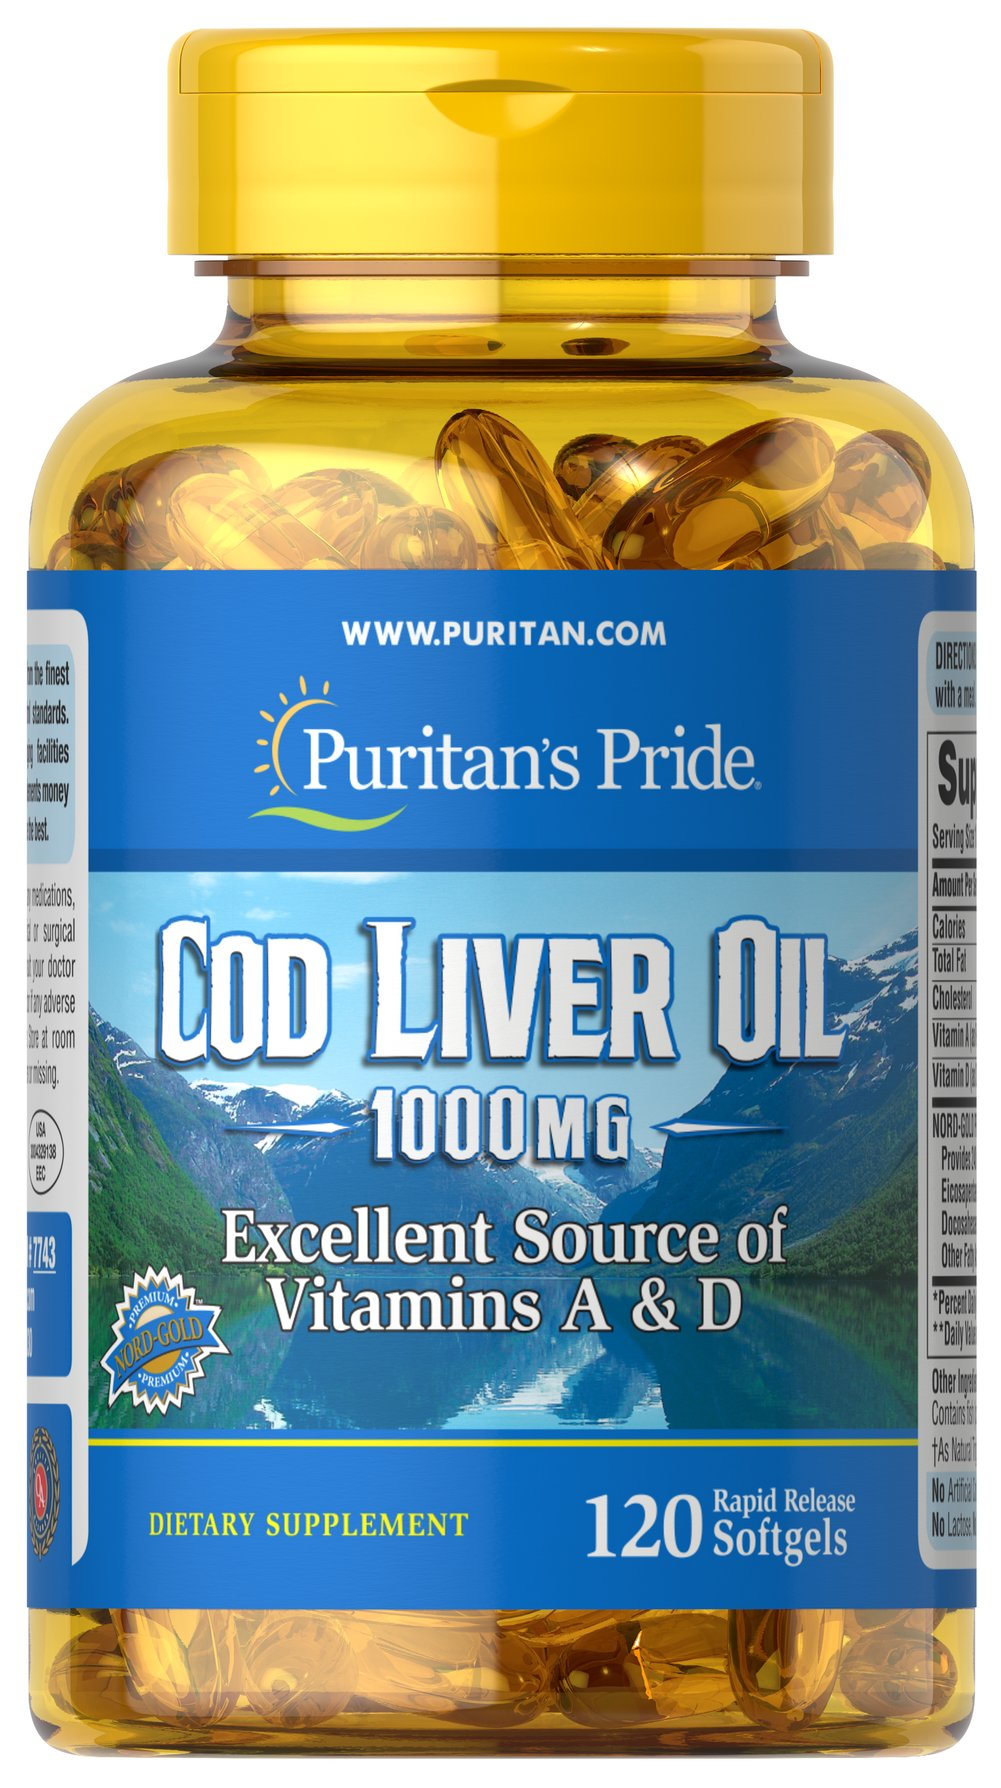 Cod Liver Oil 1000 mg <p>Norwegian cod has traditionally been one of the most popular natural sources of  <b>both Vitamins A & D</b>. </p> <p>Vitamin D helps maintain healthy bones in adults. ** </p>  <p>Vitamin A helps maintain eye health. **</p>  <p>Vitamins A & D help regulate the immune system.**</p>  120 Softgels 1000 mg $18.99